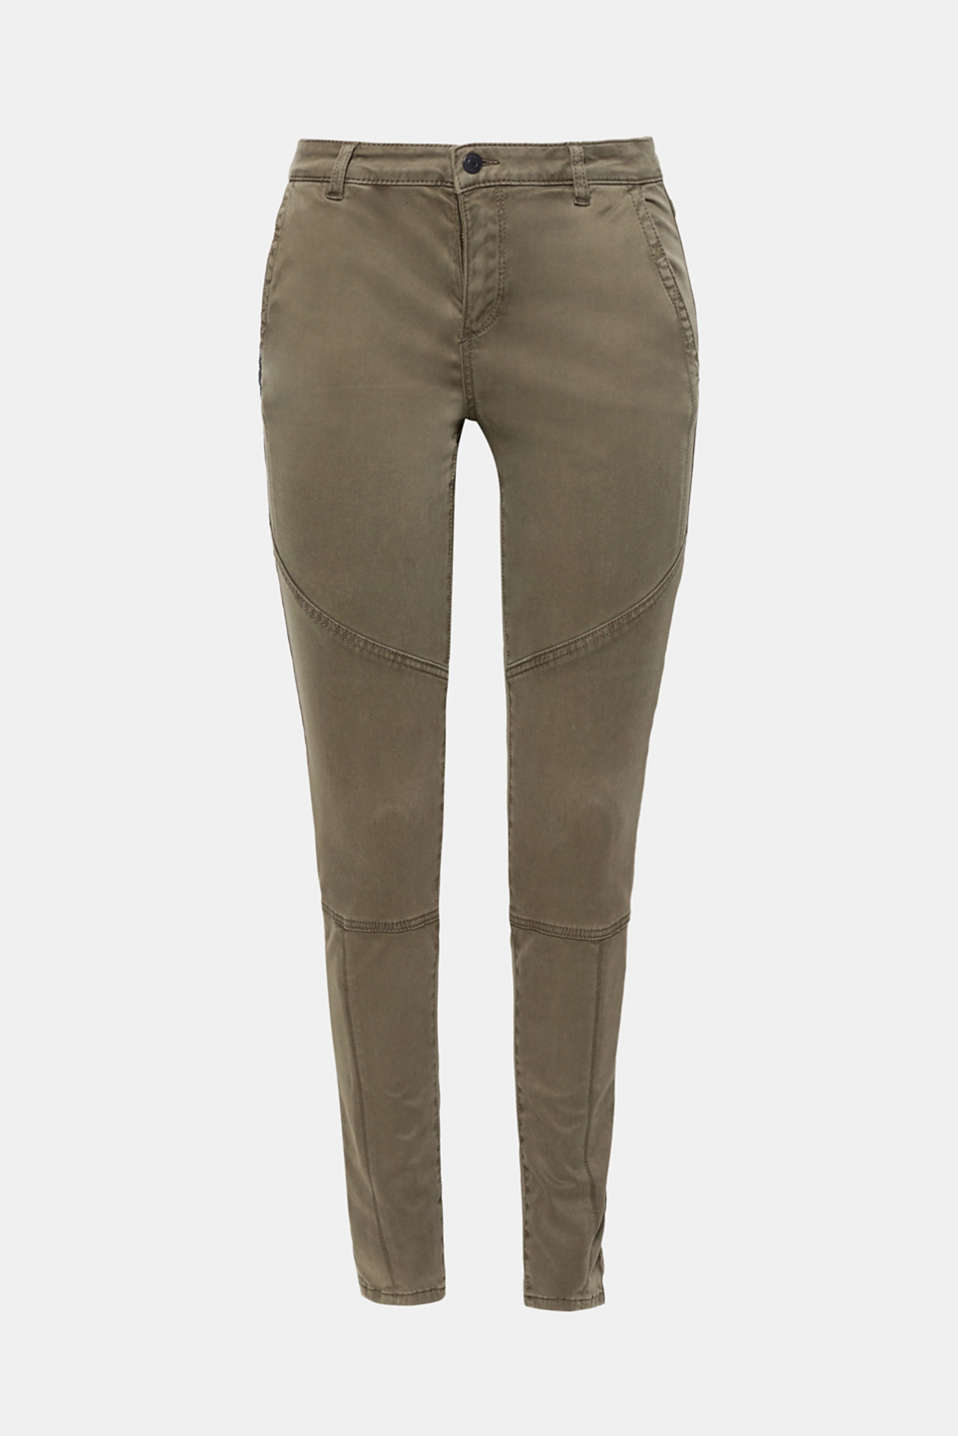 These slim fitting cargo trousers with a smooth satin finish look particularly elegant thanks to the high-quality, premium fabric!